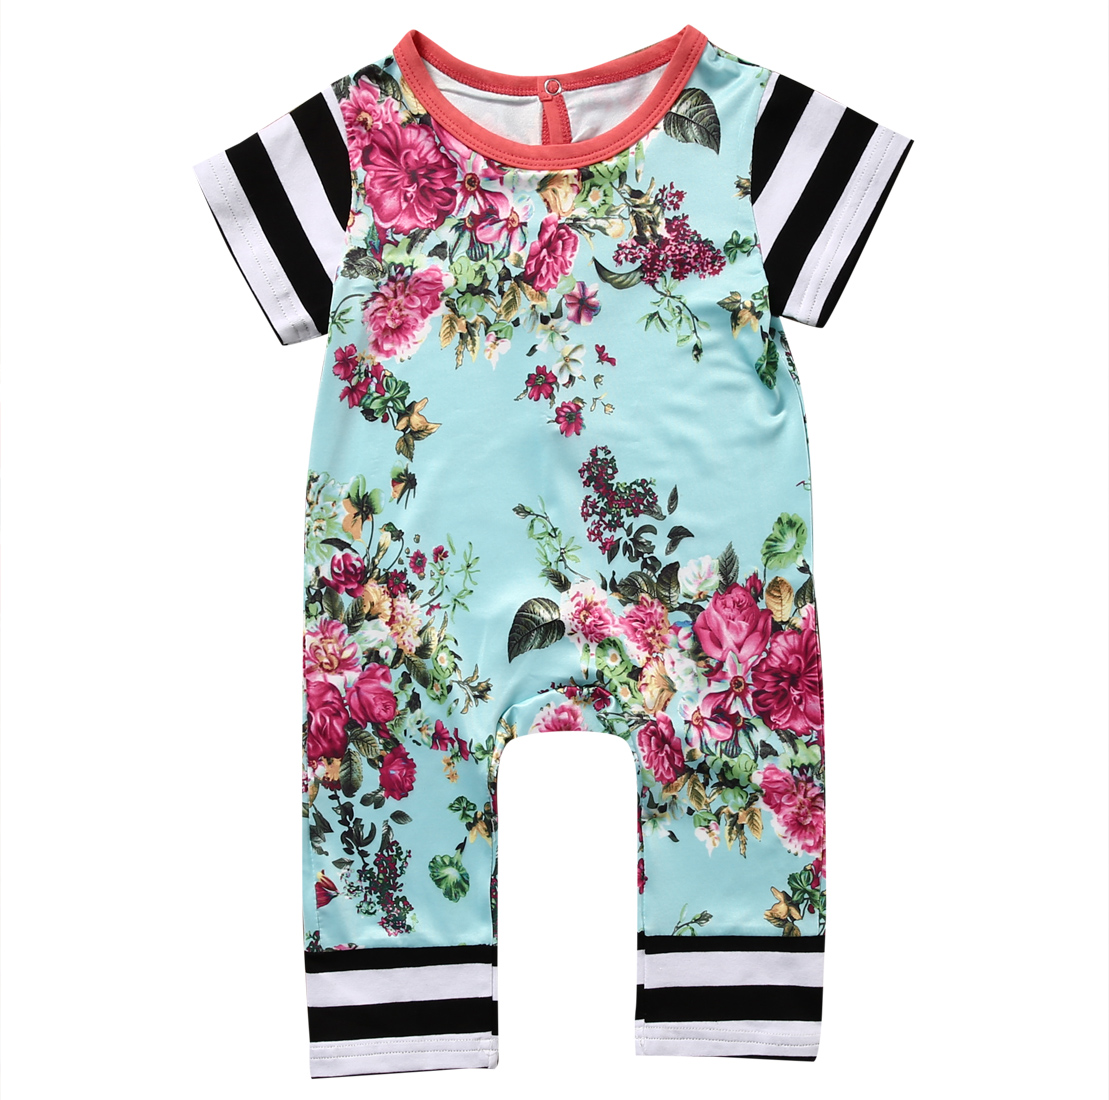 Newborn Baby Girls Boys Clothing Romper Short Sleeve Flower Cute Jumpsuit Kids Baby Girl Clothes Outfit Summer girls tops cute pants outfit clothes newborn kids baby girl clothing sets summer off shoulder striped short sleeve 1 6t